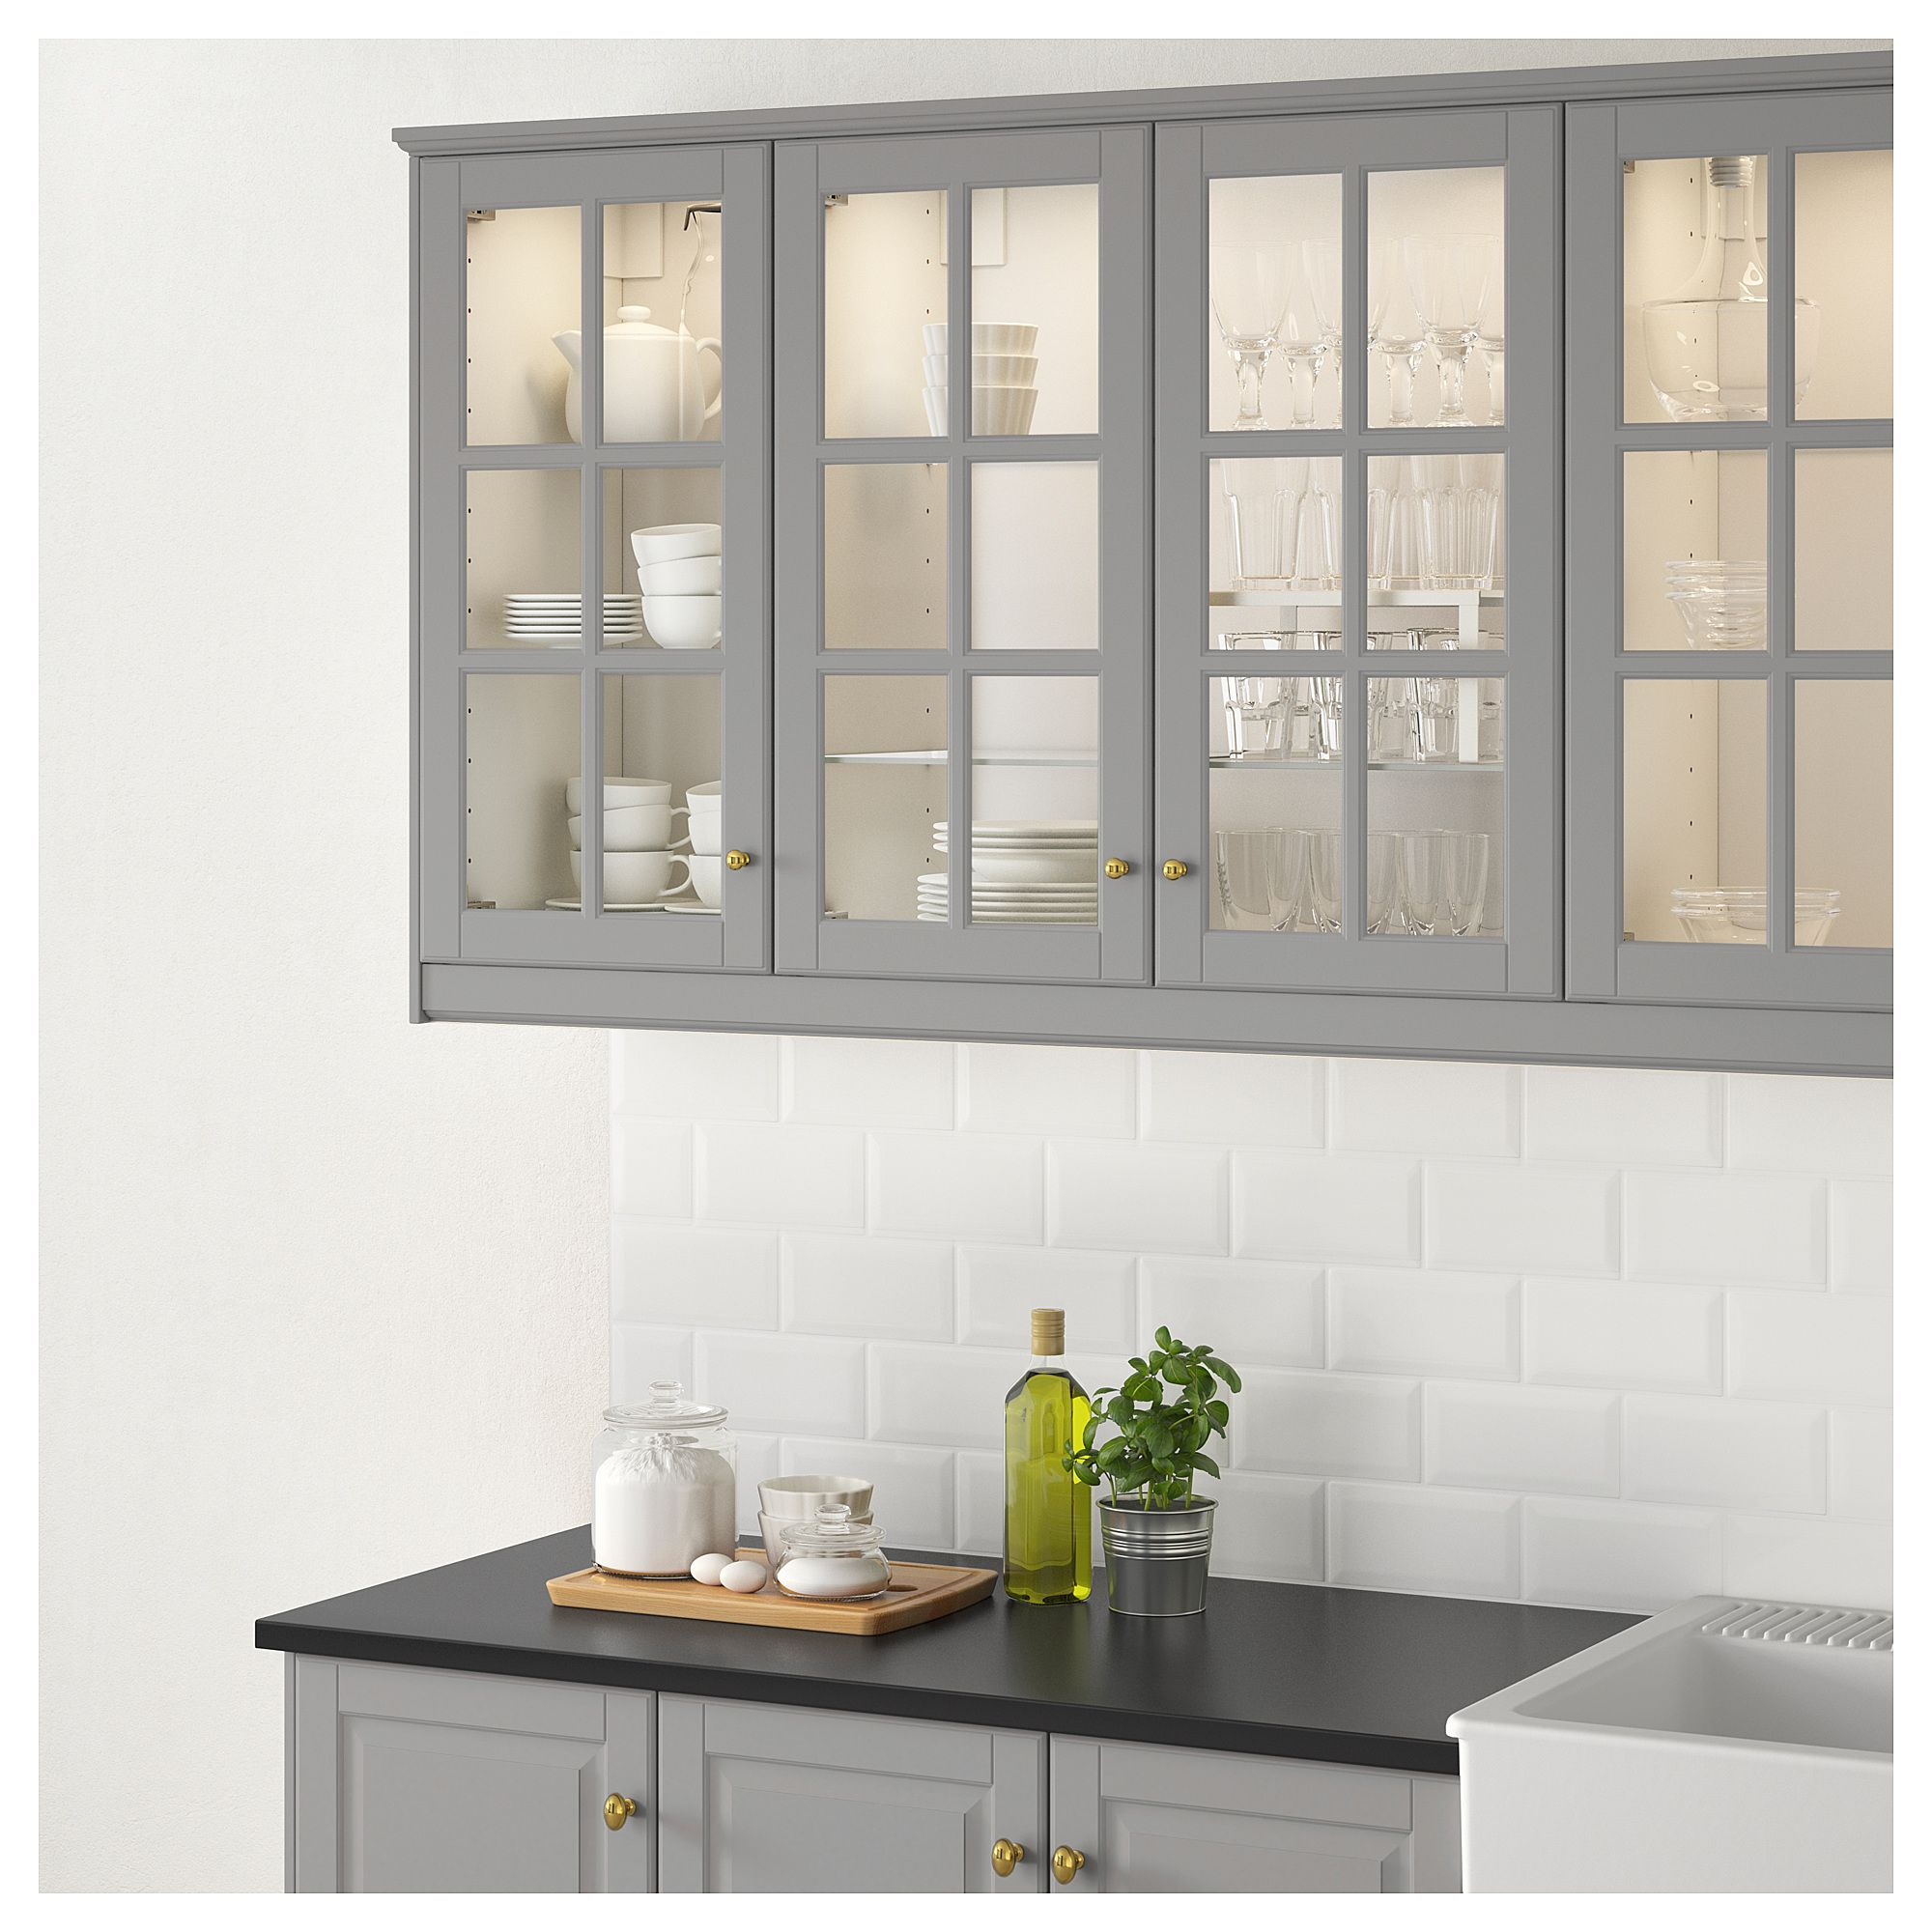 ikea bodbyn glass door gray in 2019 products glass kitchen cabinet doors bodbyn kitchen sale. Black Bedroom Furniture Sets. Home Design Ideas